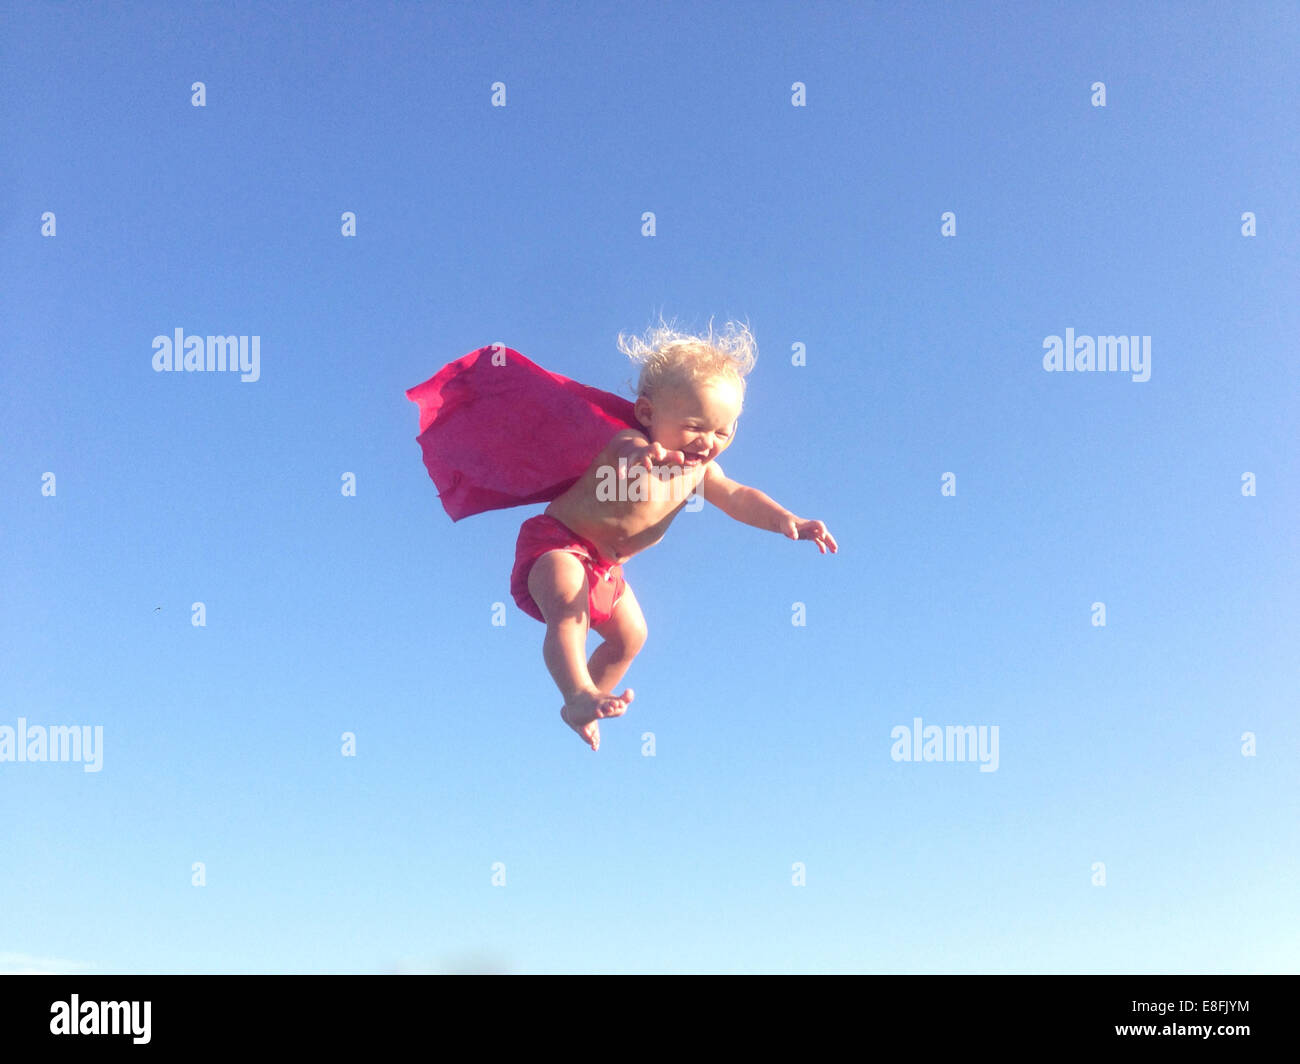 Baby boy dressed as a superhero mid air - Stock Image